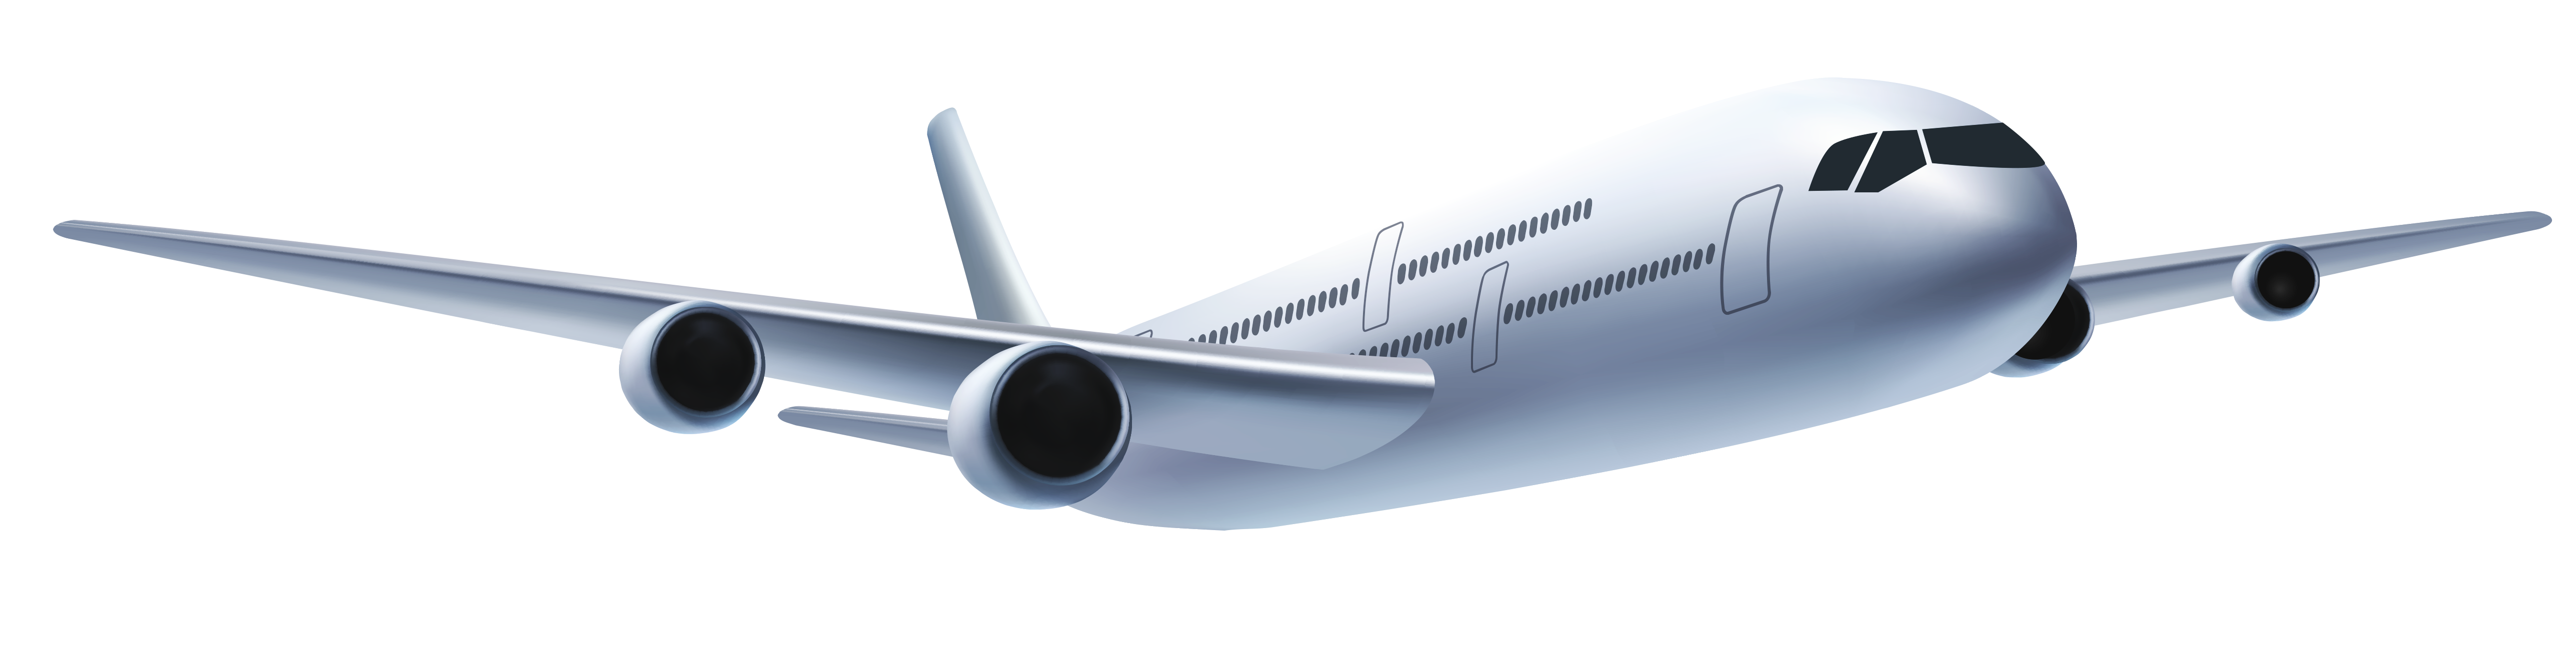 Jet exhaust png. Airplane clip art plane